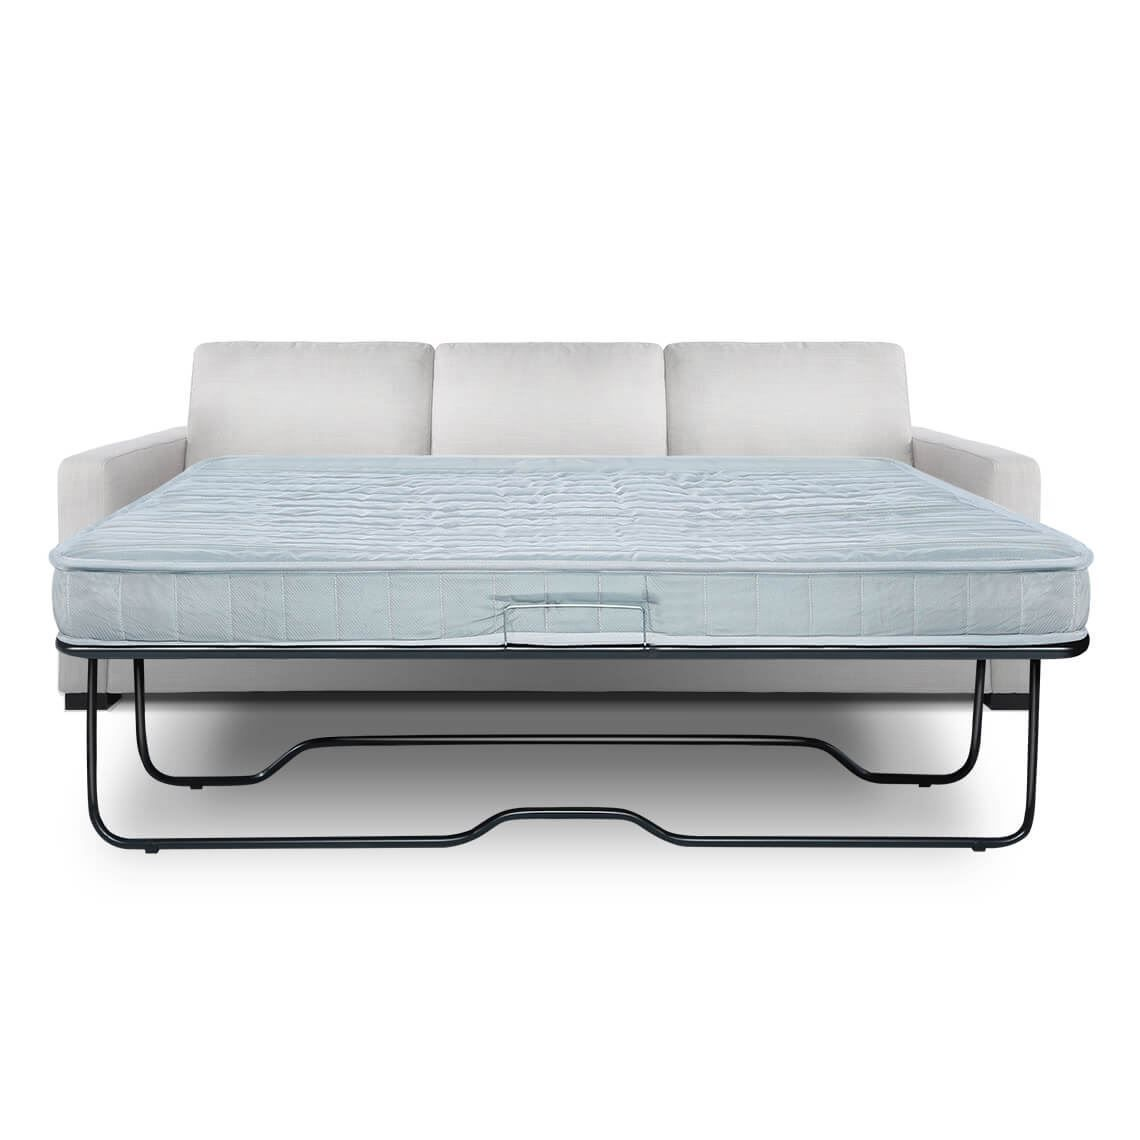 Signature Contemporary 3 Seat Fabric Sofabed In 2019 Products